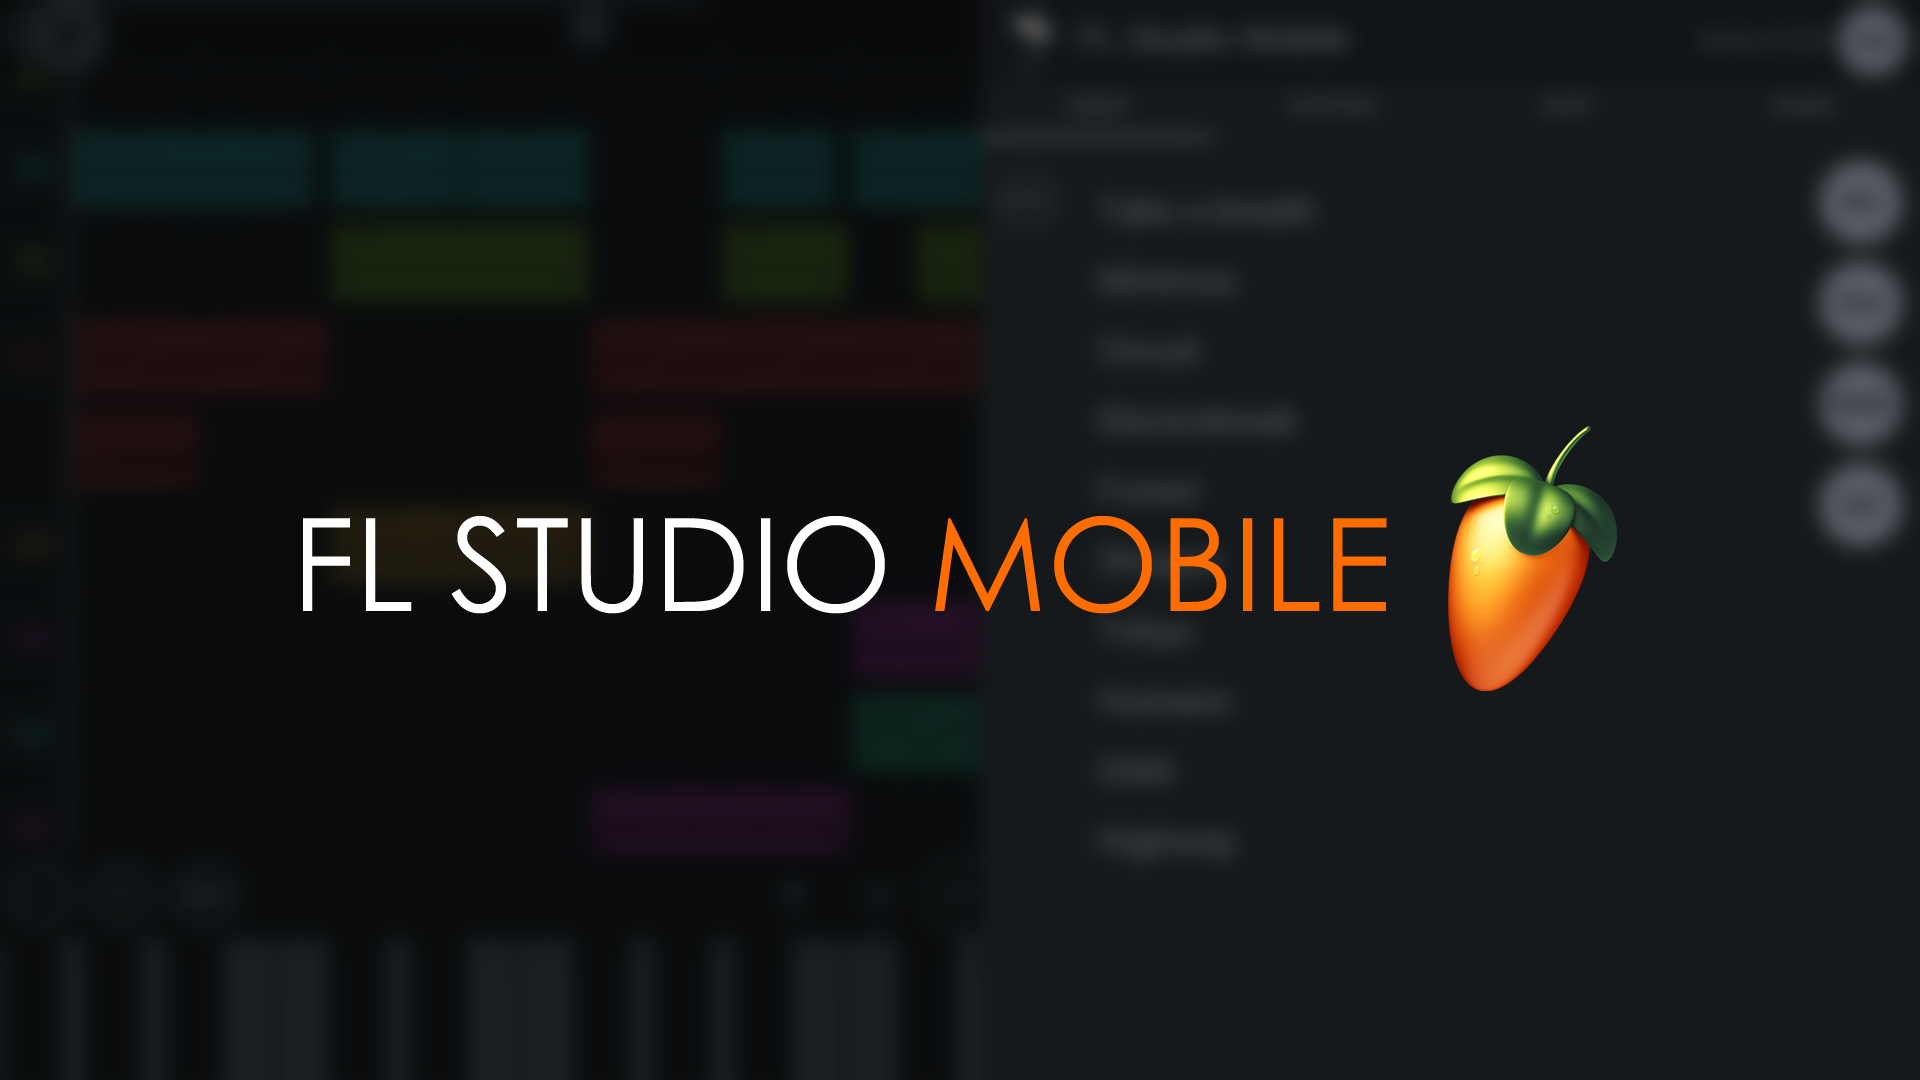 fl studio mobile 2017 free download android